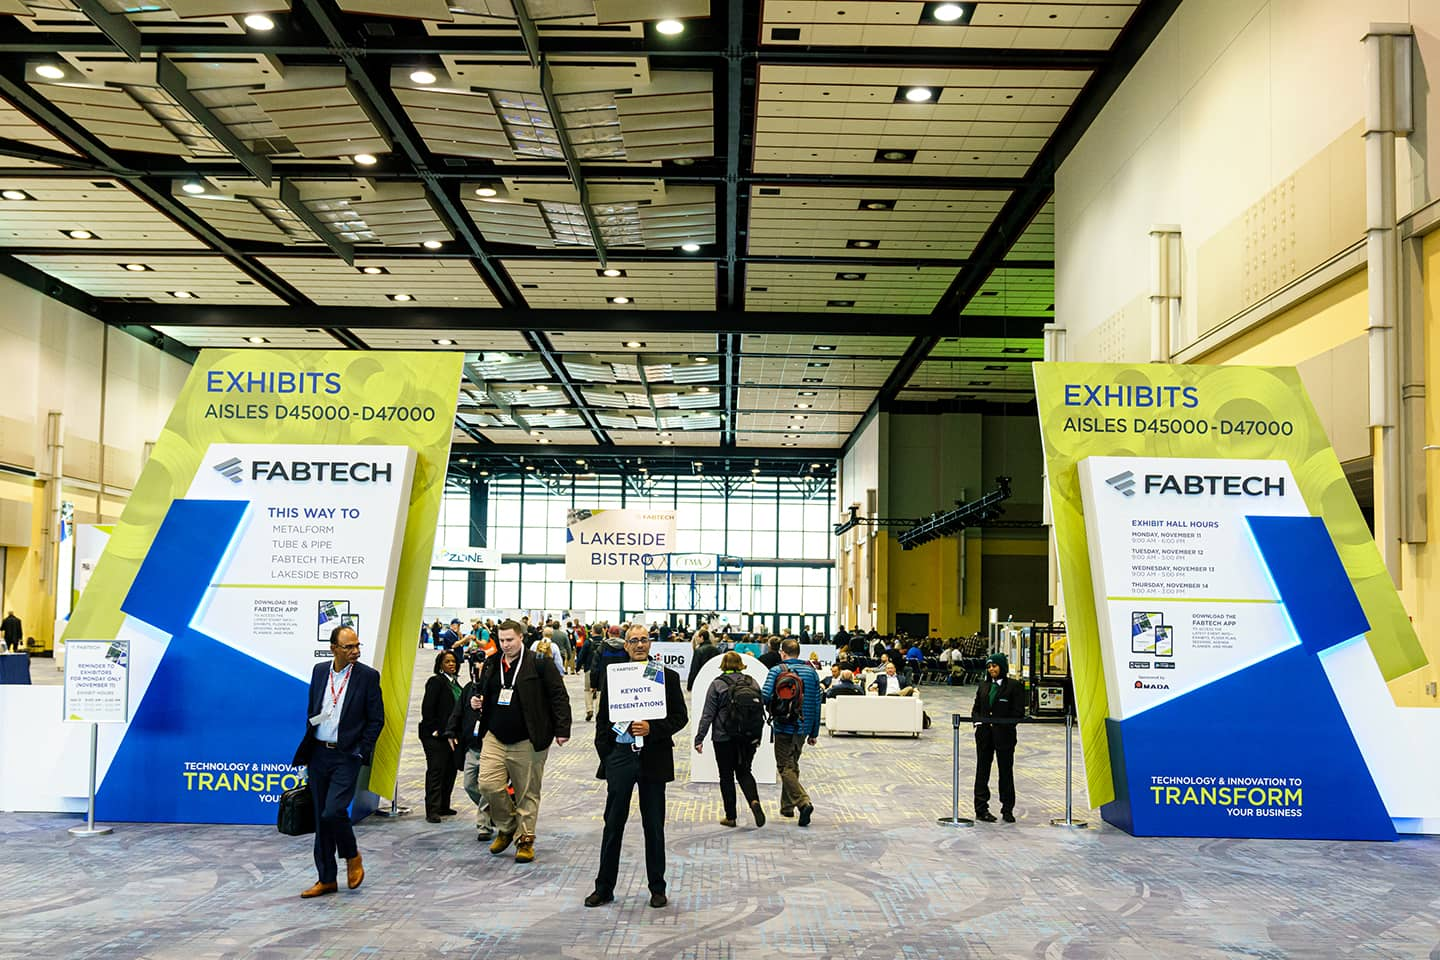 About FABTECH